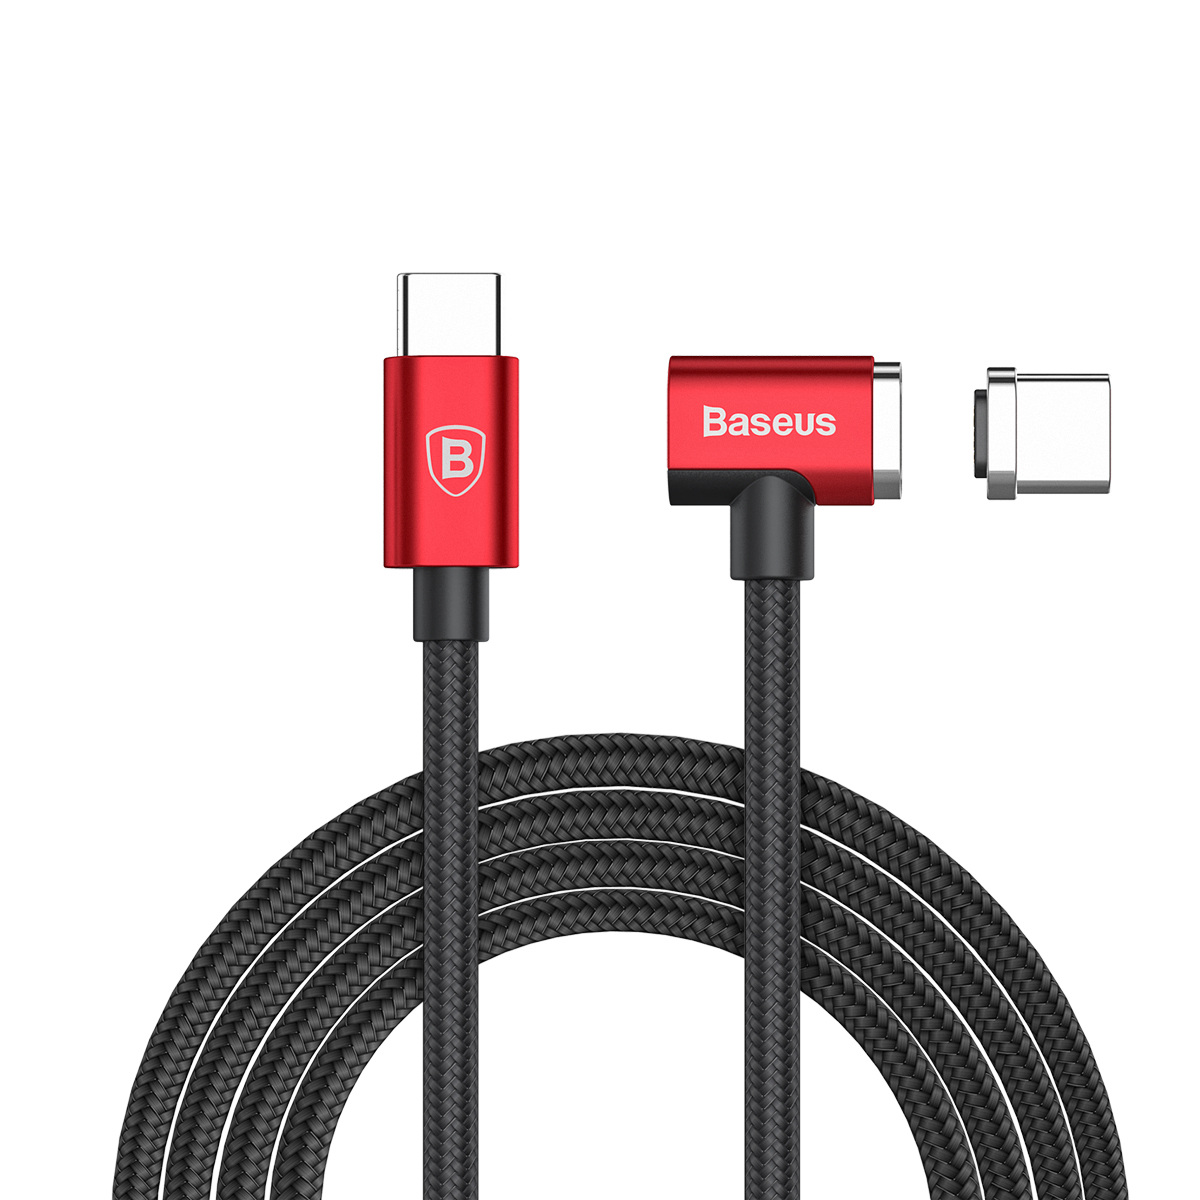 Кабель Baseus Magnet Type-C cable(Side insert) For Type-C 1.5M Red+Black aukey 0 9m 3ft usb 3 1 type c to type c cable